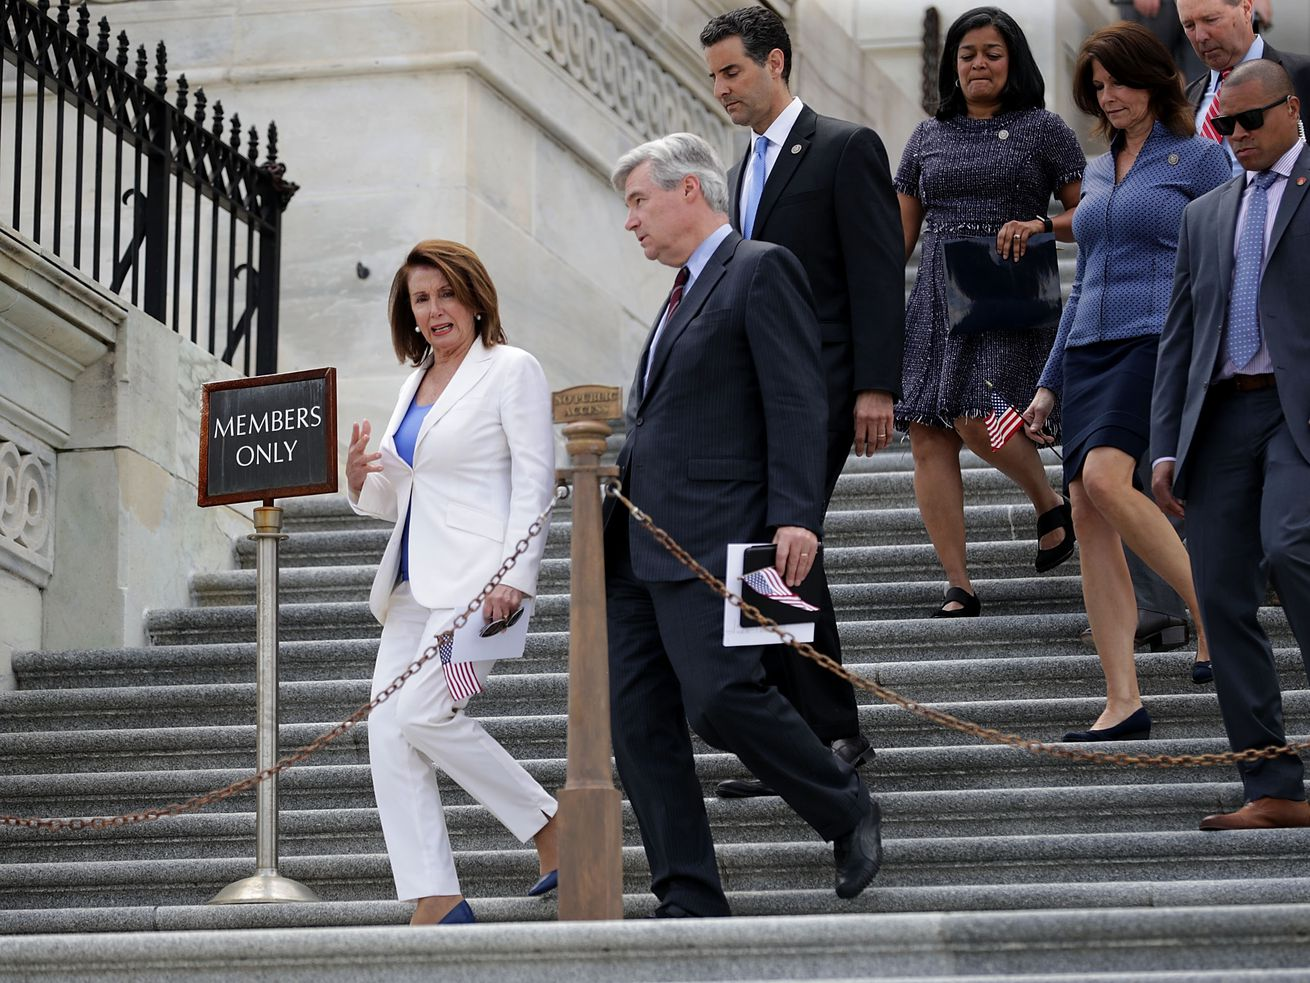 House Democrats, including Minority Leader Nancy Pelosi (left) and Rep. John Sarbanes (third from left), descend the House steps.